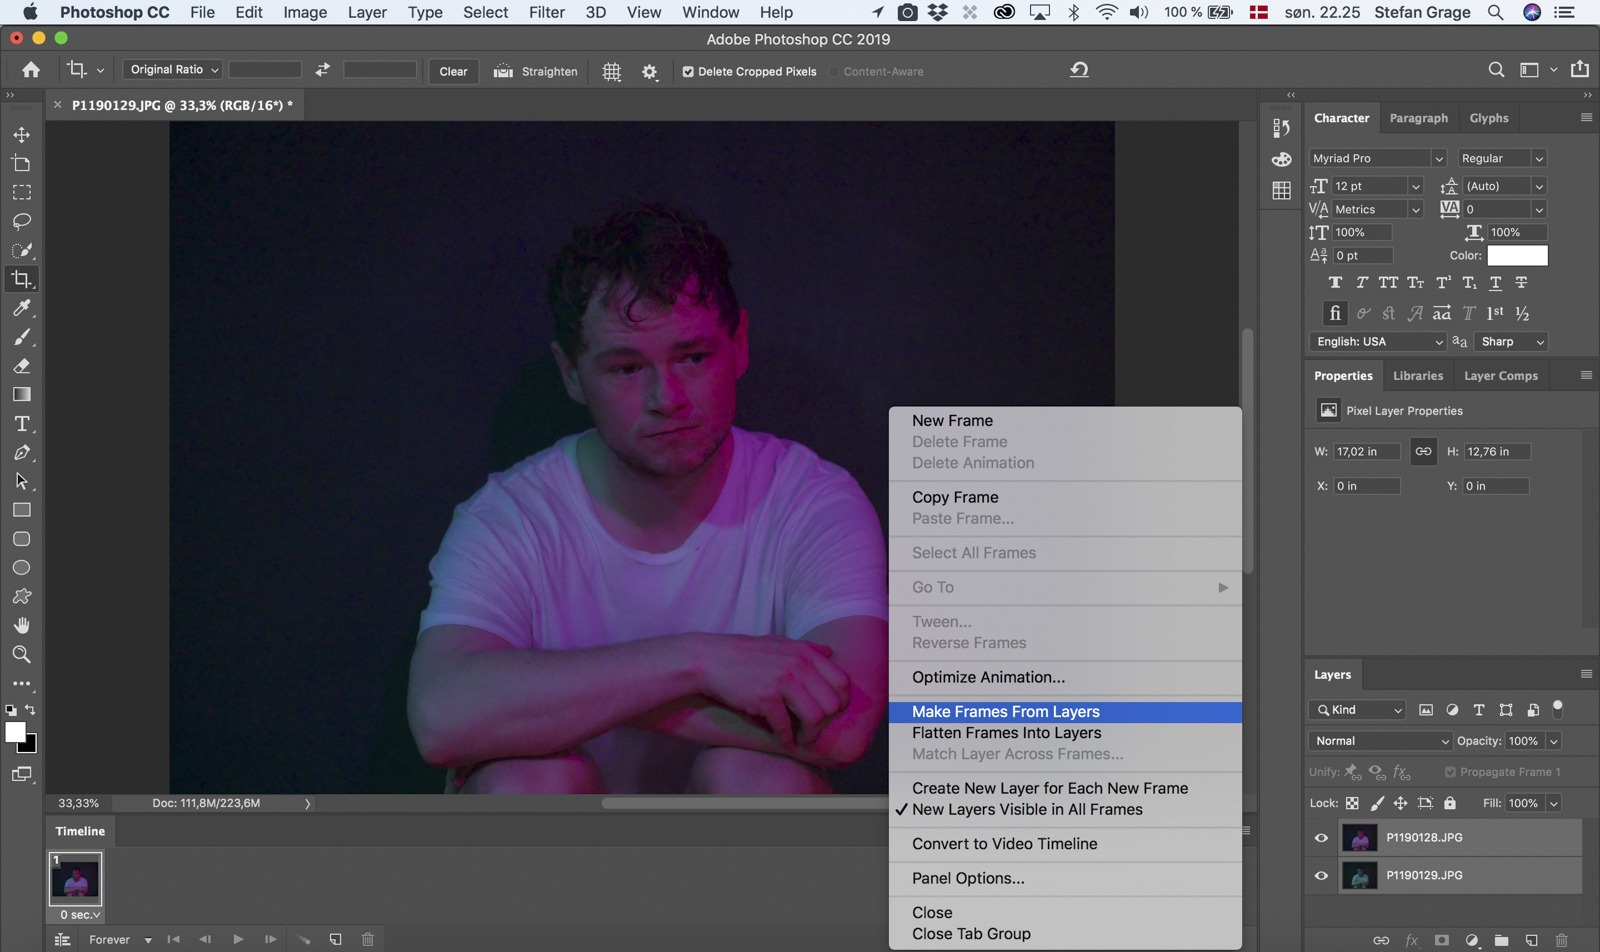 Photoshop: Make Frames From Layers